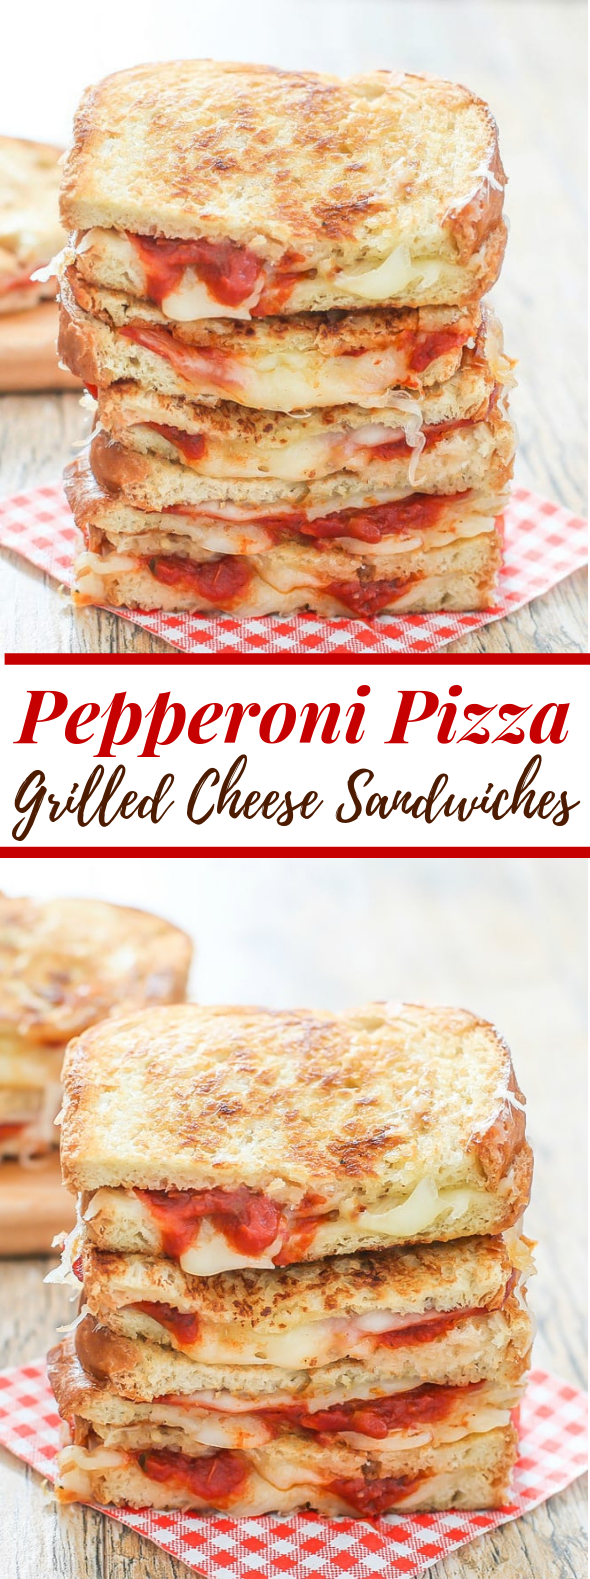 PIZZA GRILLED CHEESE SANDWICH #partyfood #lowfat